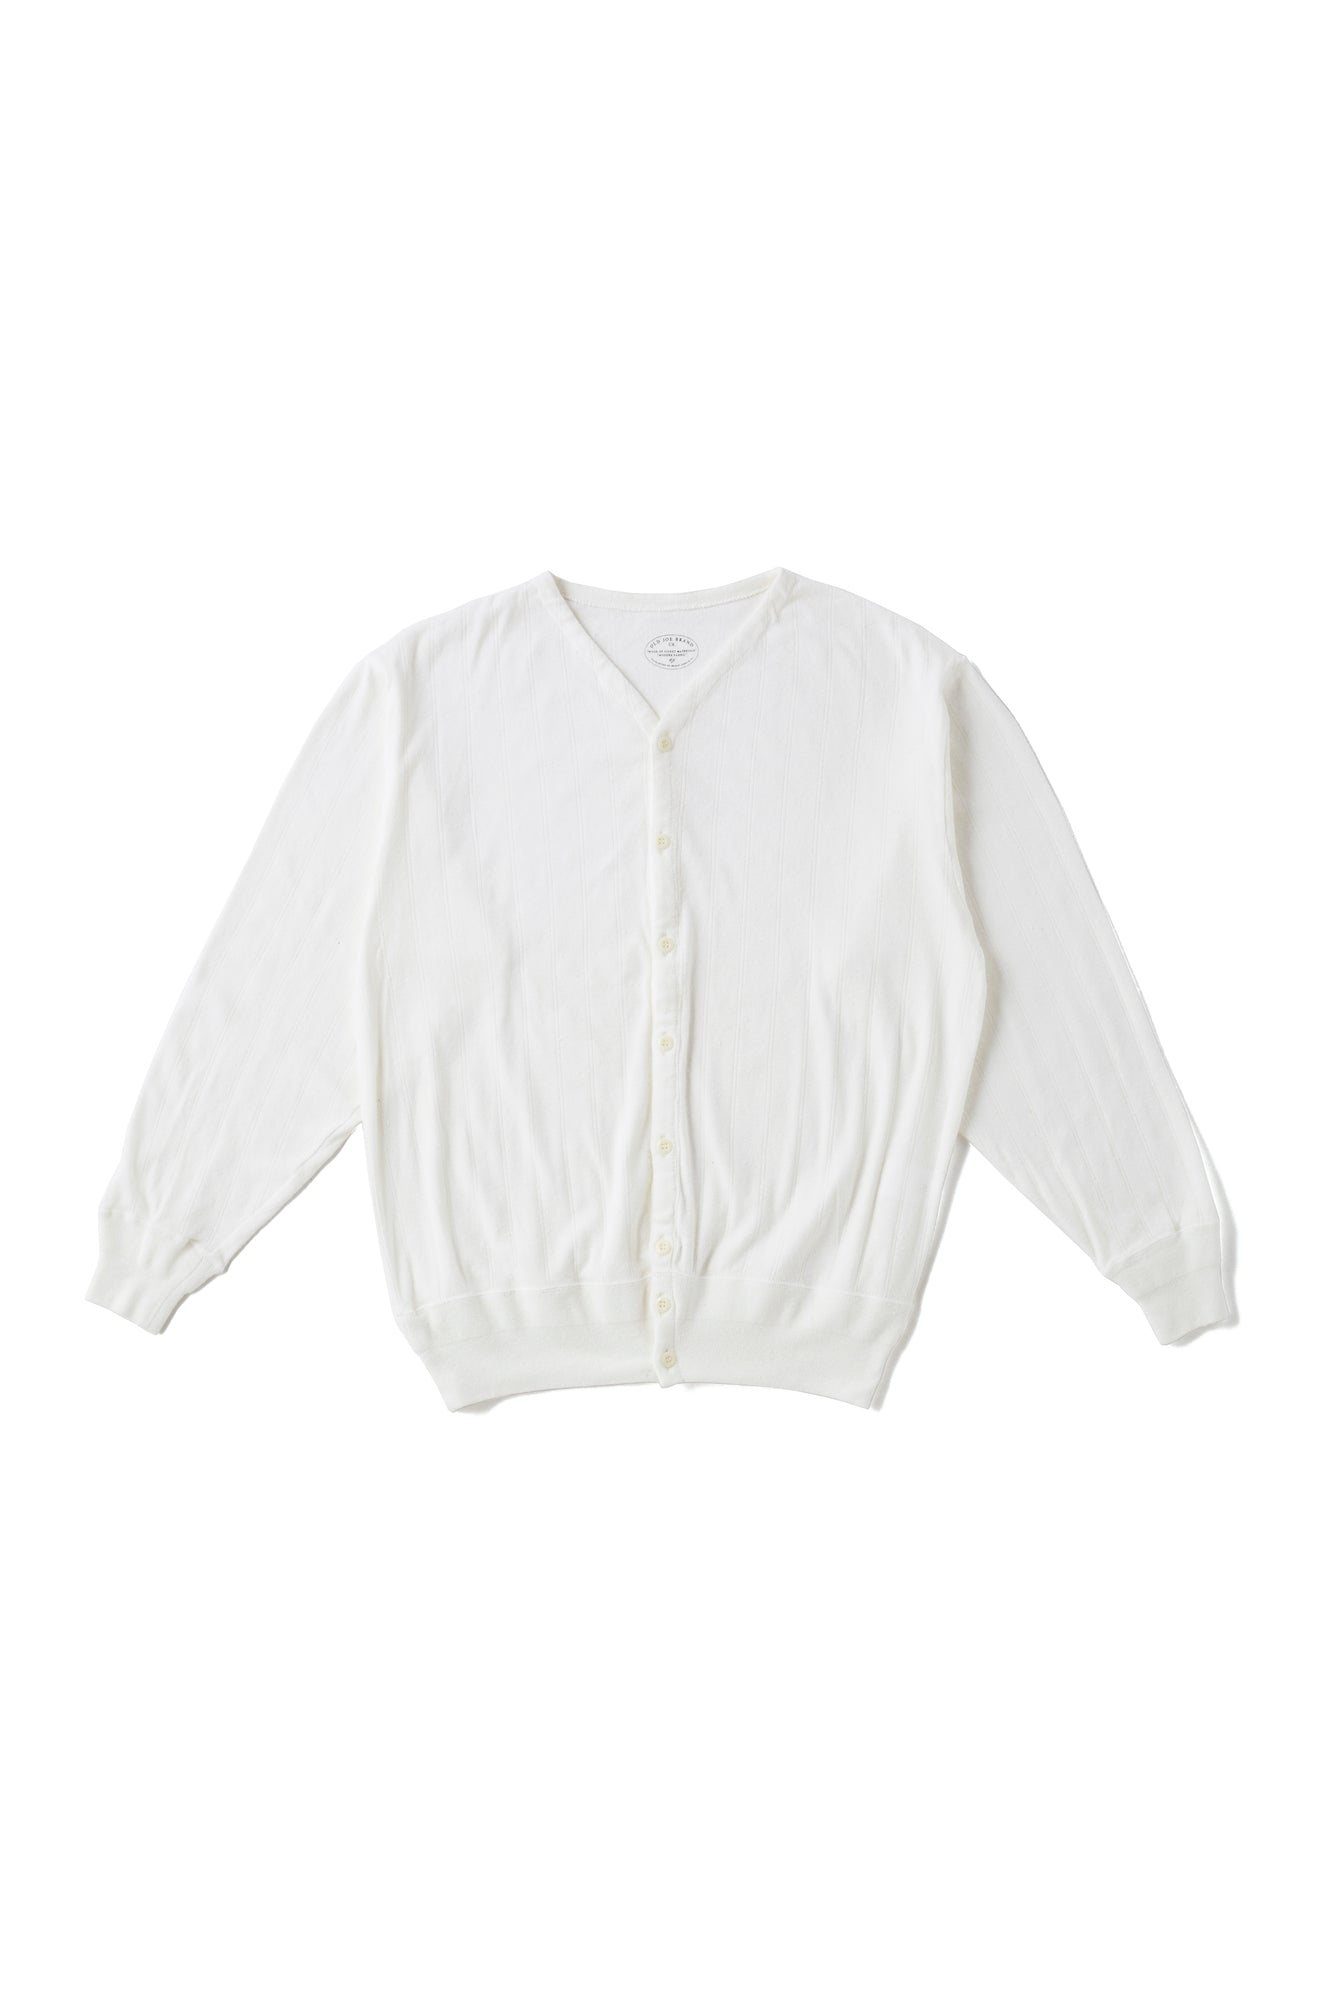 RIBBED OPEN-FRONT SHIRTS - 201OJ-CT02